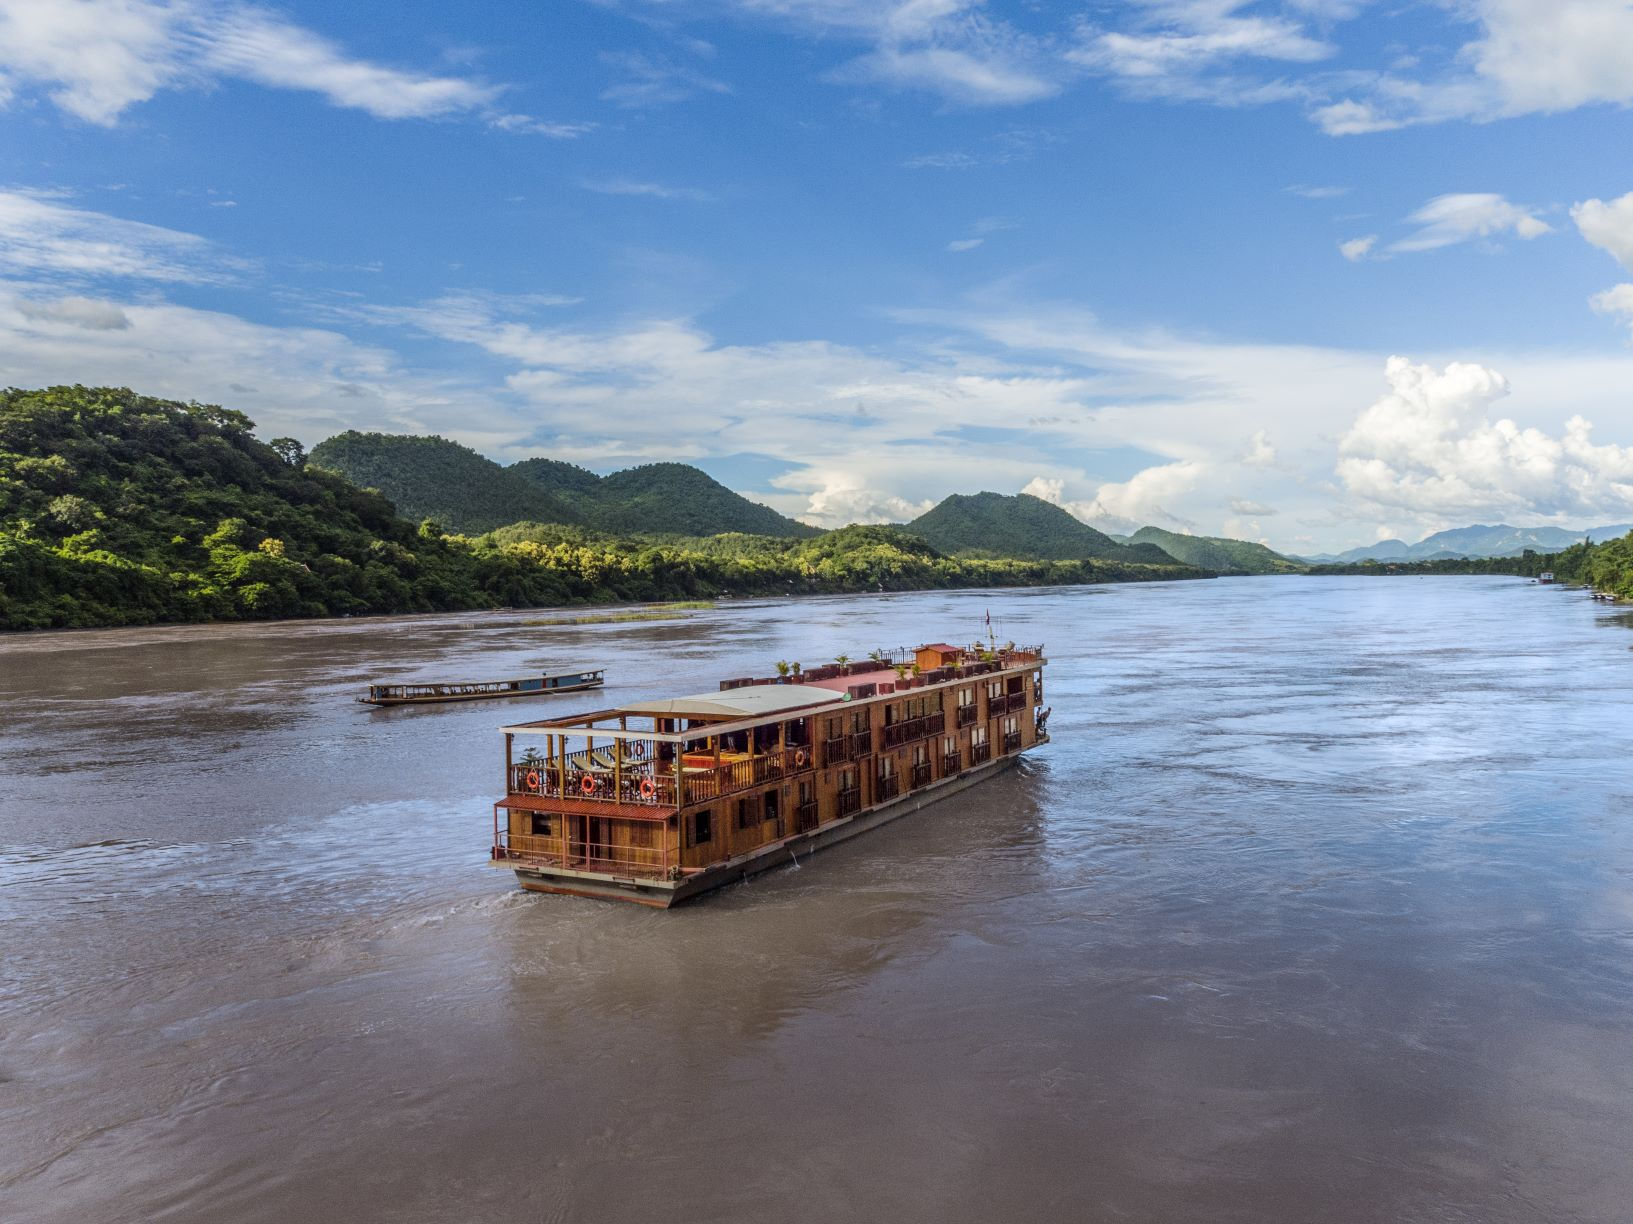 LUXURY GOLF CRUISE TOUR IN LAOS & THAILAND: THE MIGHTY UPPER MEKONG RIVER